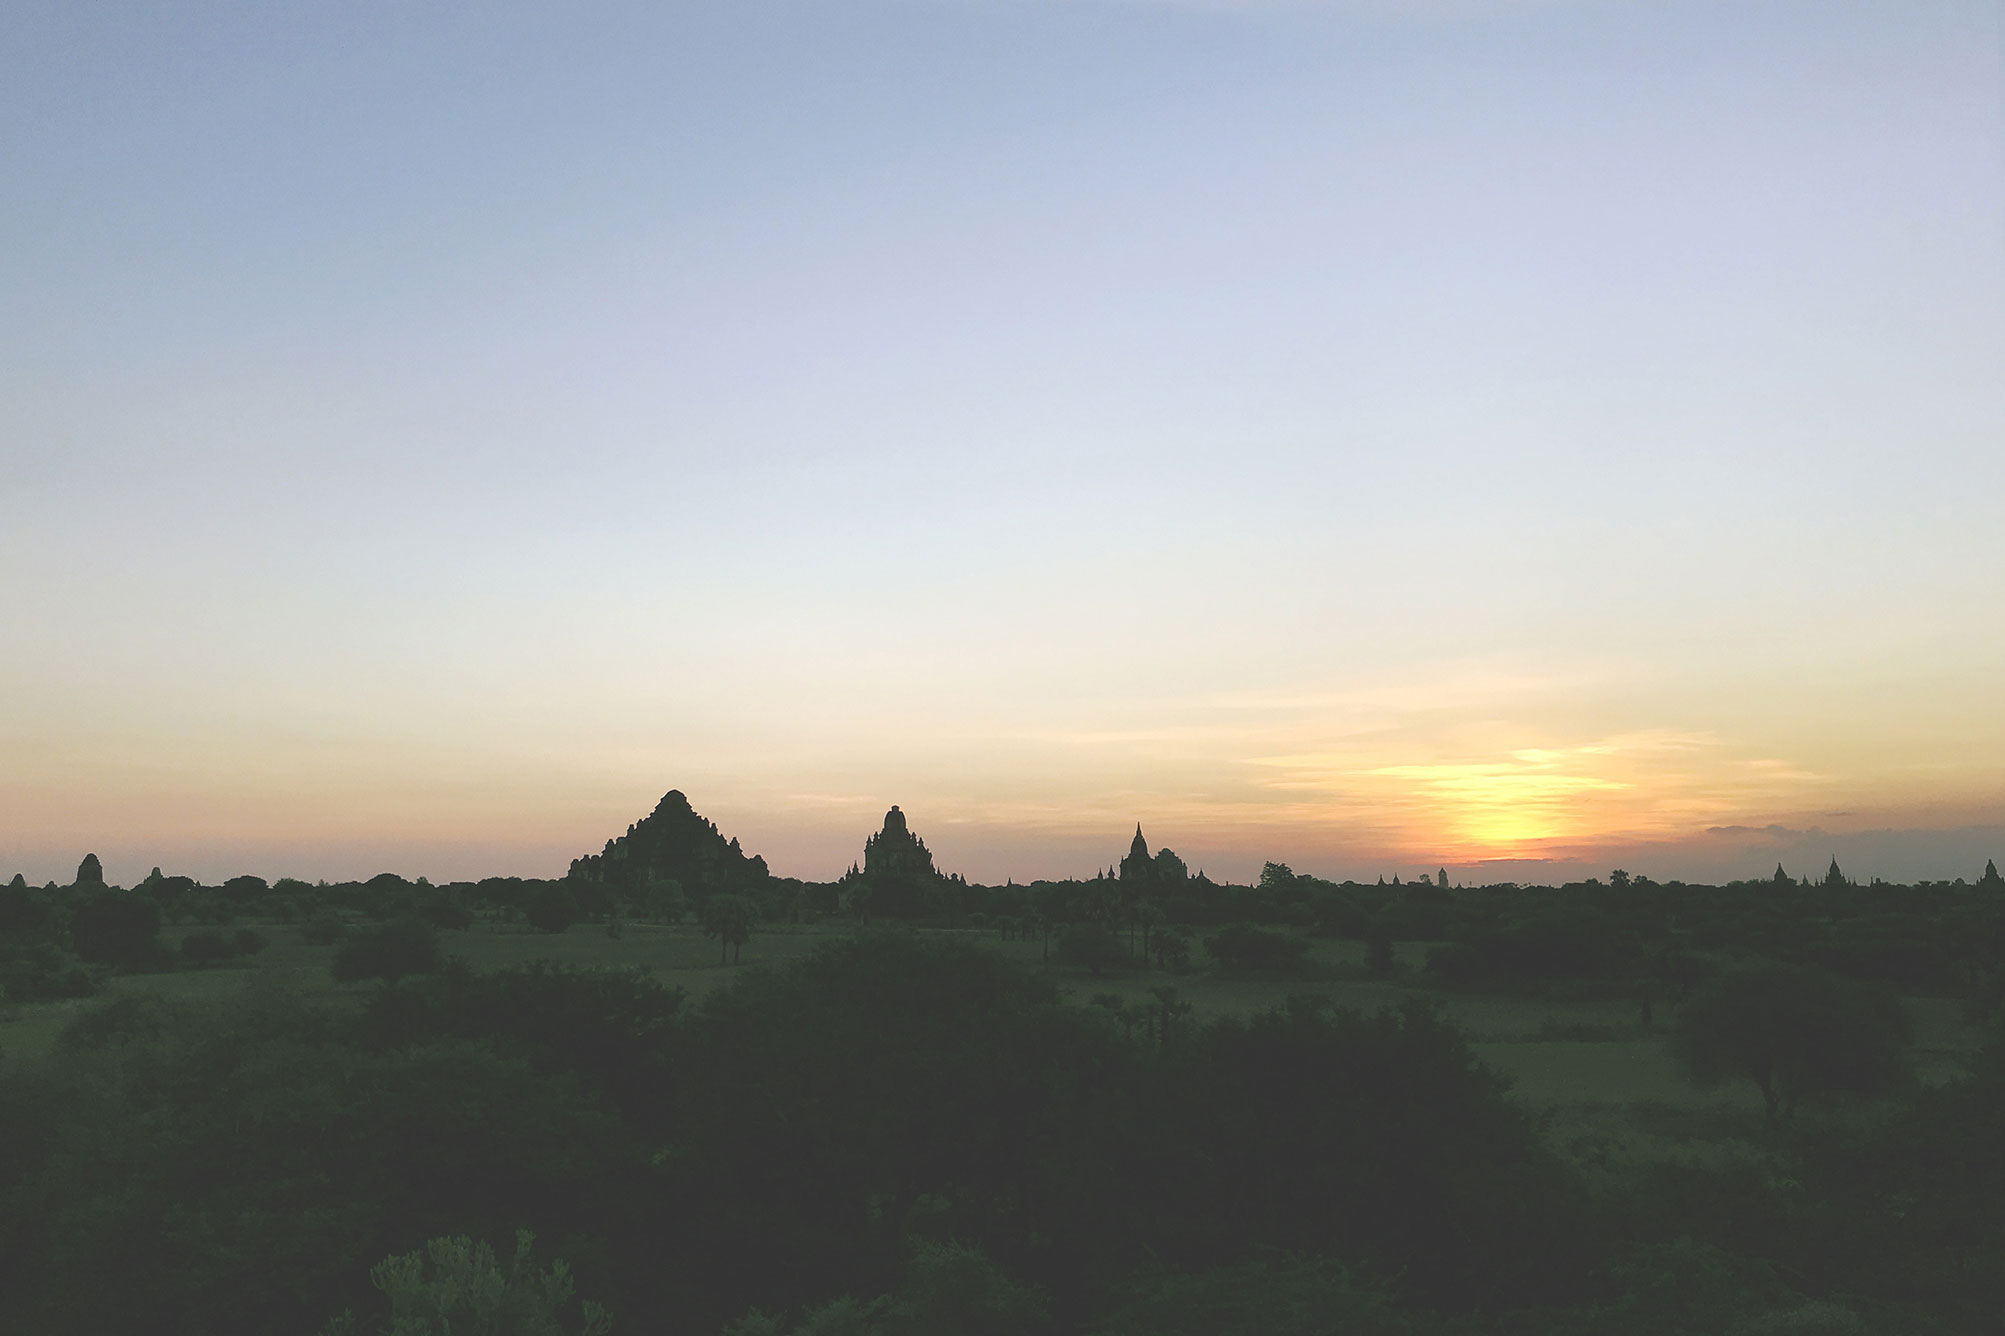 Sunrise seen from pagoda in Bagan Myanmar